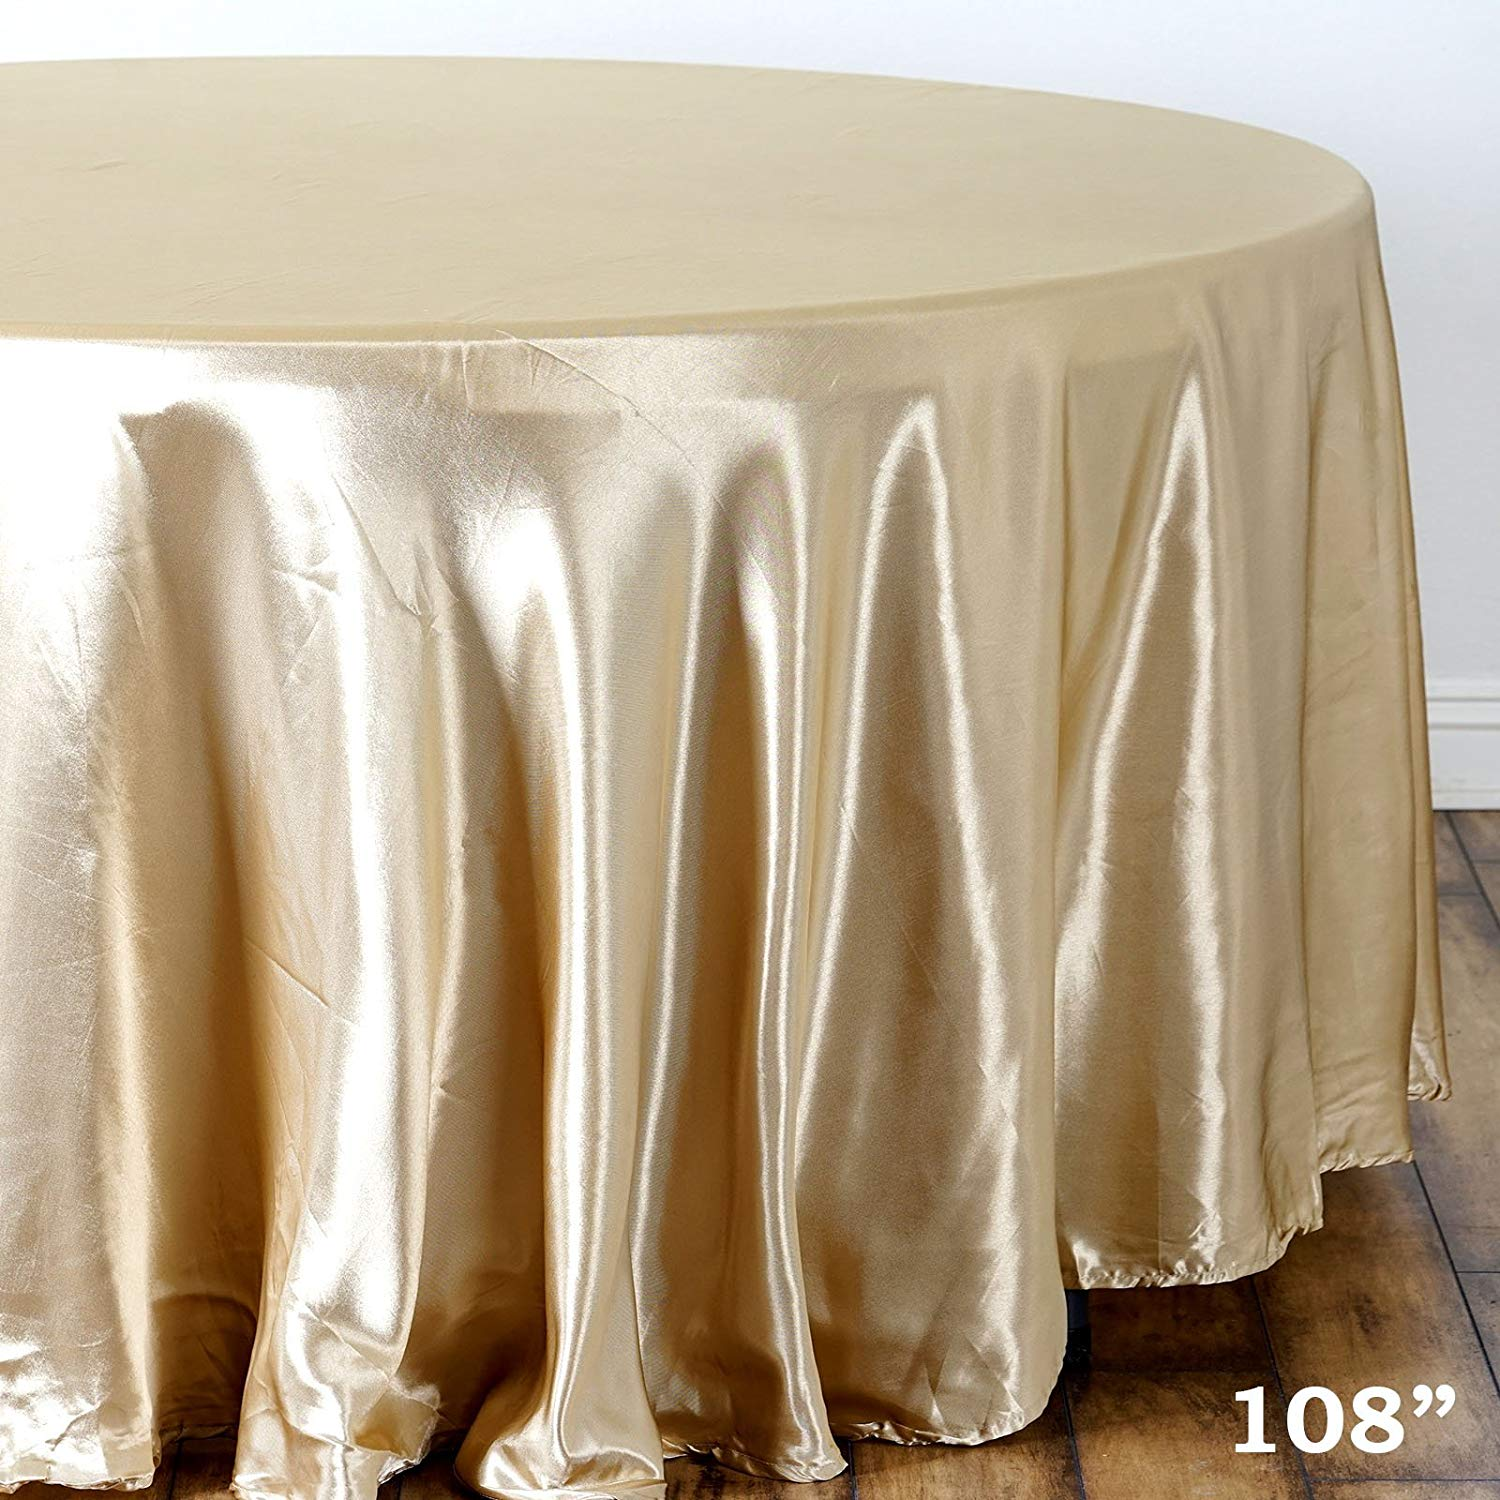 balsacircle inch champagne round satin tablecloth for accent table cover linens wedding party catering kitchen dining events home pier one chairs concrete top outdoor pub height